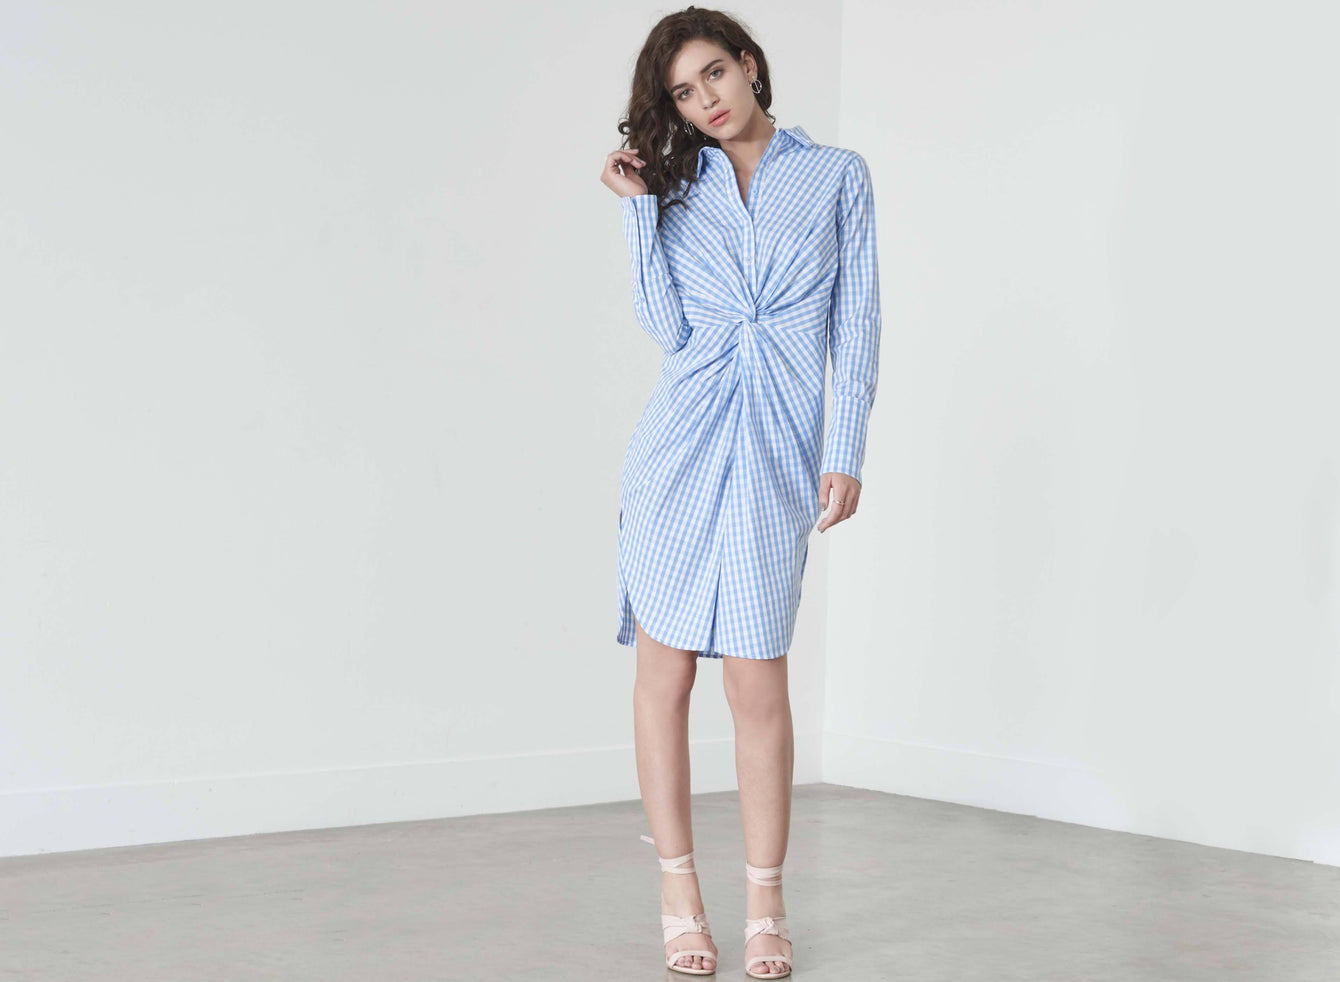 Twist-Front Shirt Dress in Blue & White Gingham